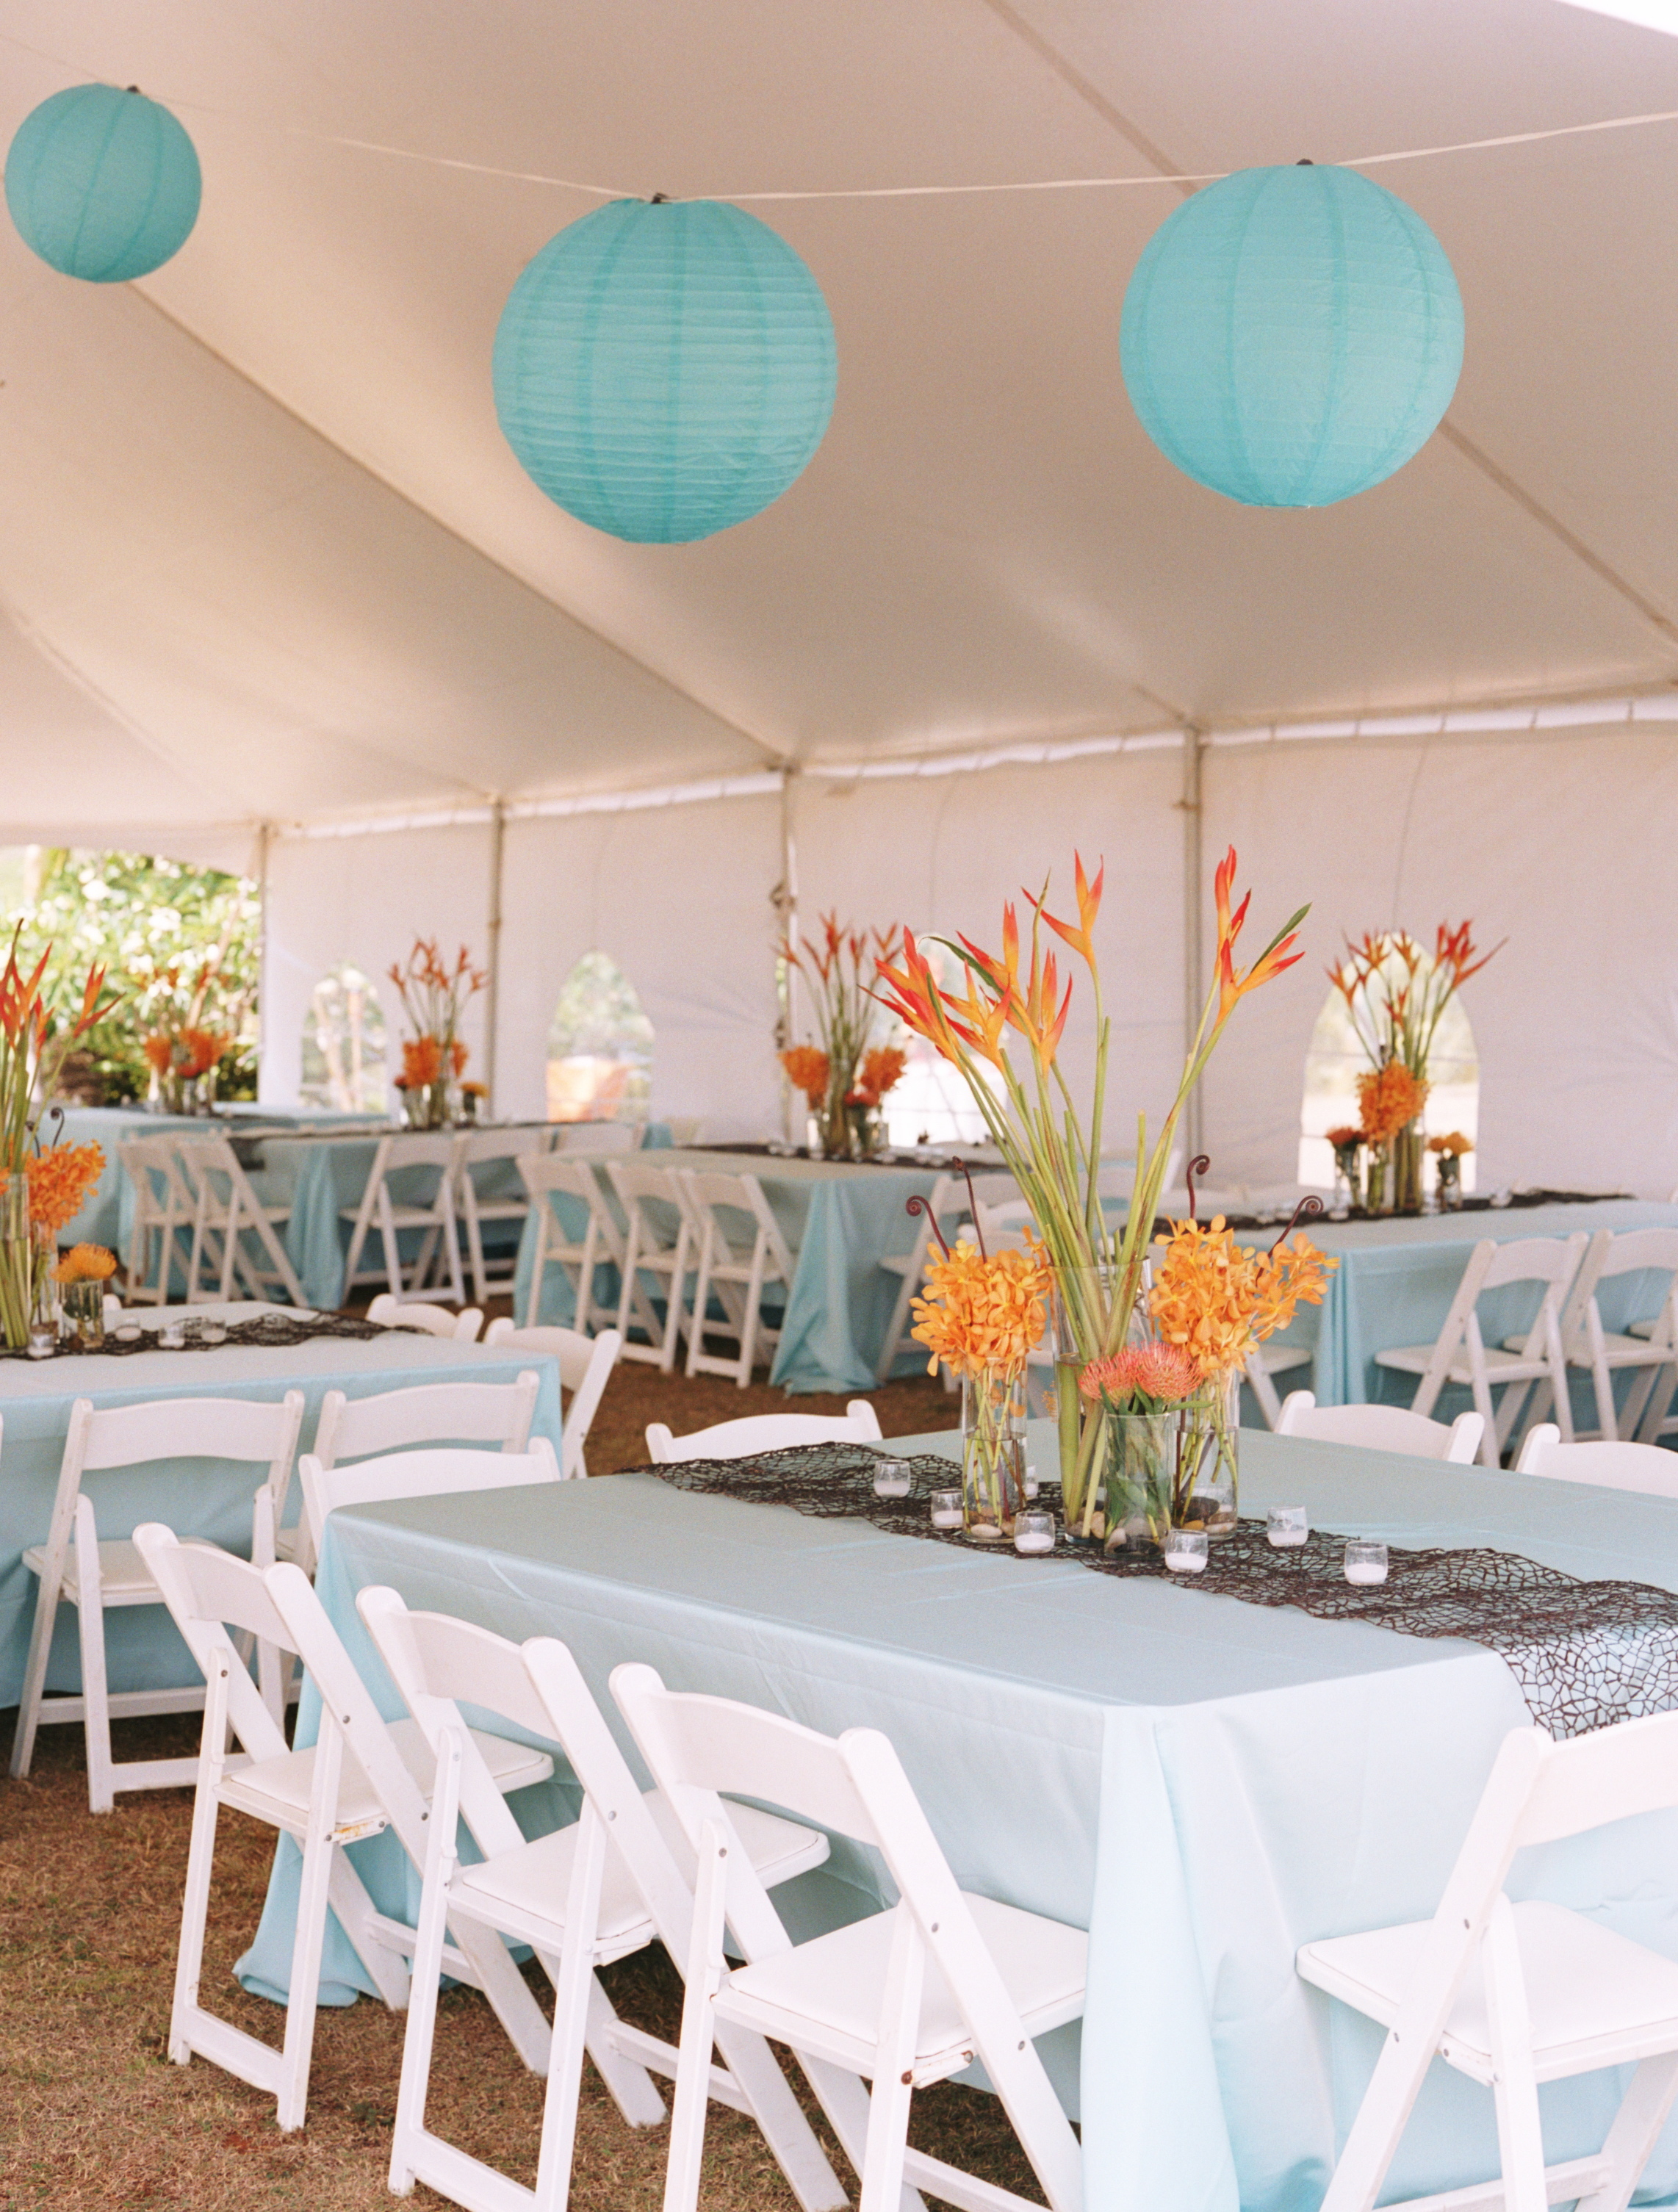 The Tented Receptions Palette Of Crisp White Turquoise And